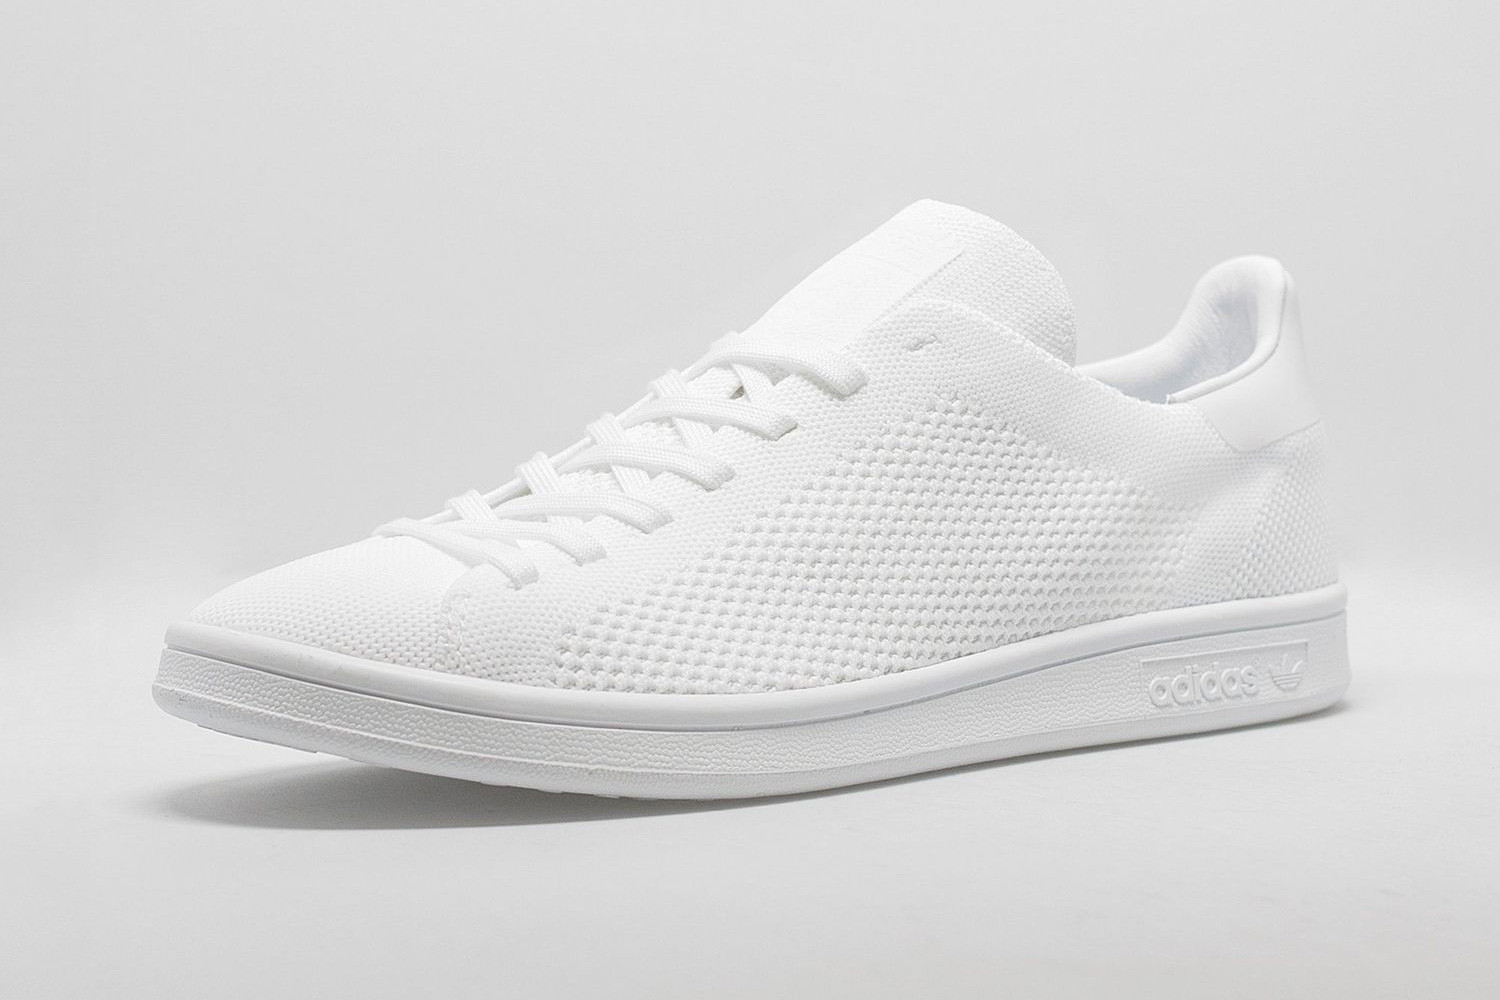 timeless design a8bfa 99772 adidas Originals Stan Smith Primeknit Triple White   Black   HYPEBEAST